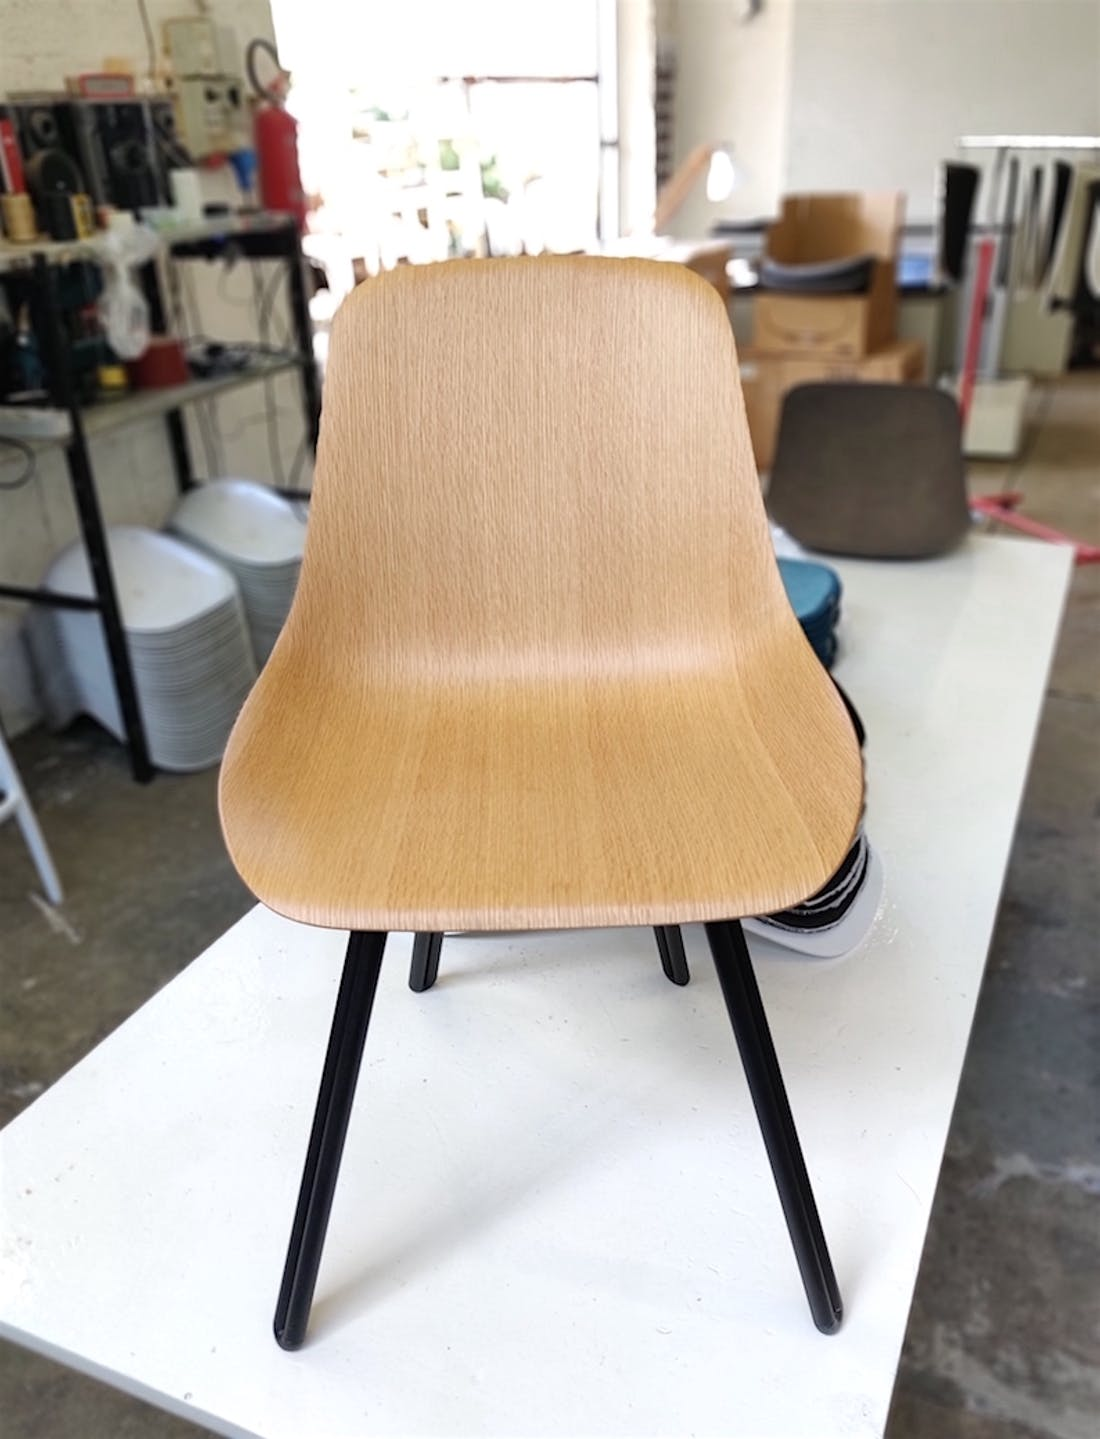 W9 Wooden Side Chair by Kubikoff, Kubikoff W9 Chair, Kubikoff Chair W9, 3D Veneer technology Chair